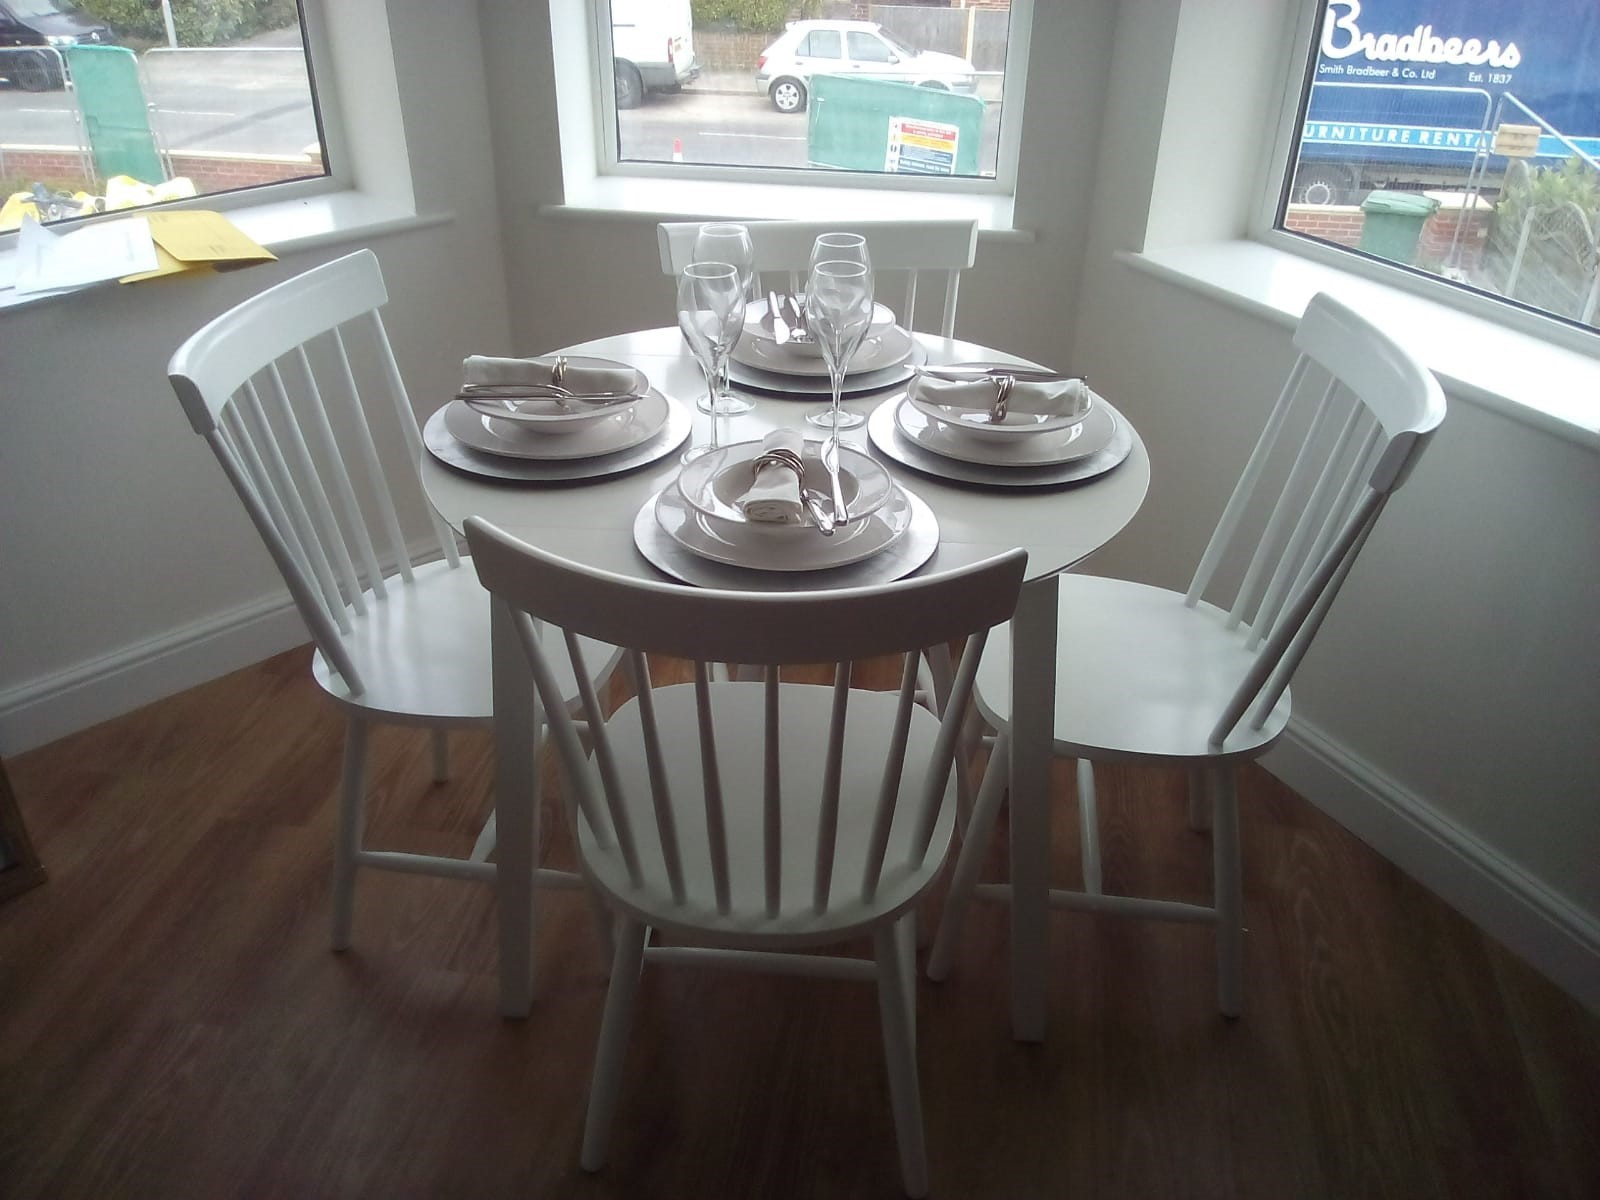 Dining Room - 11 (Superior Range)